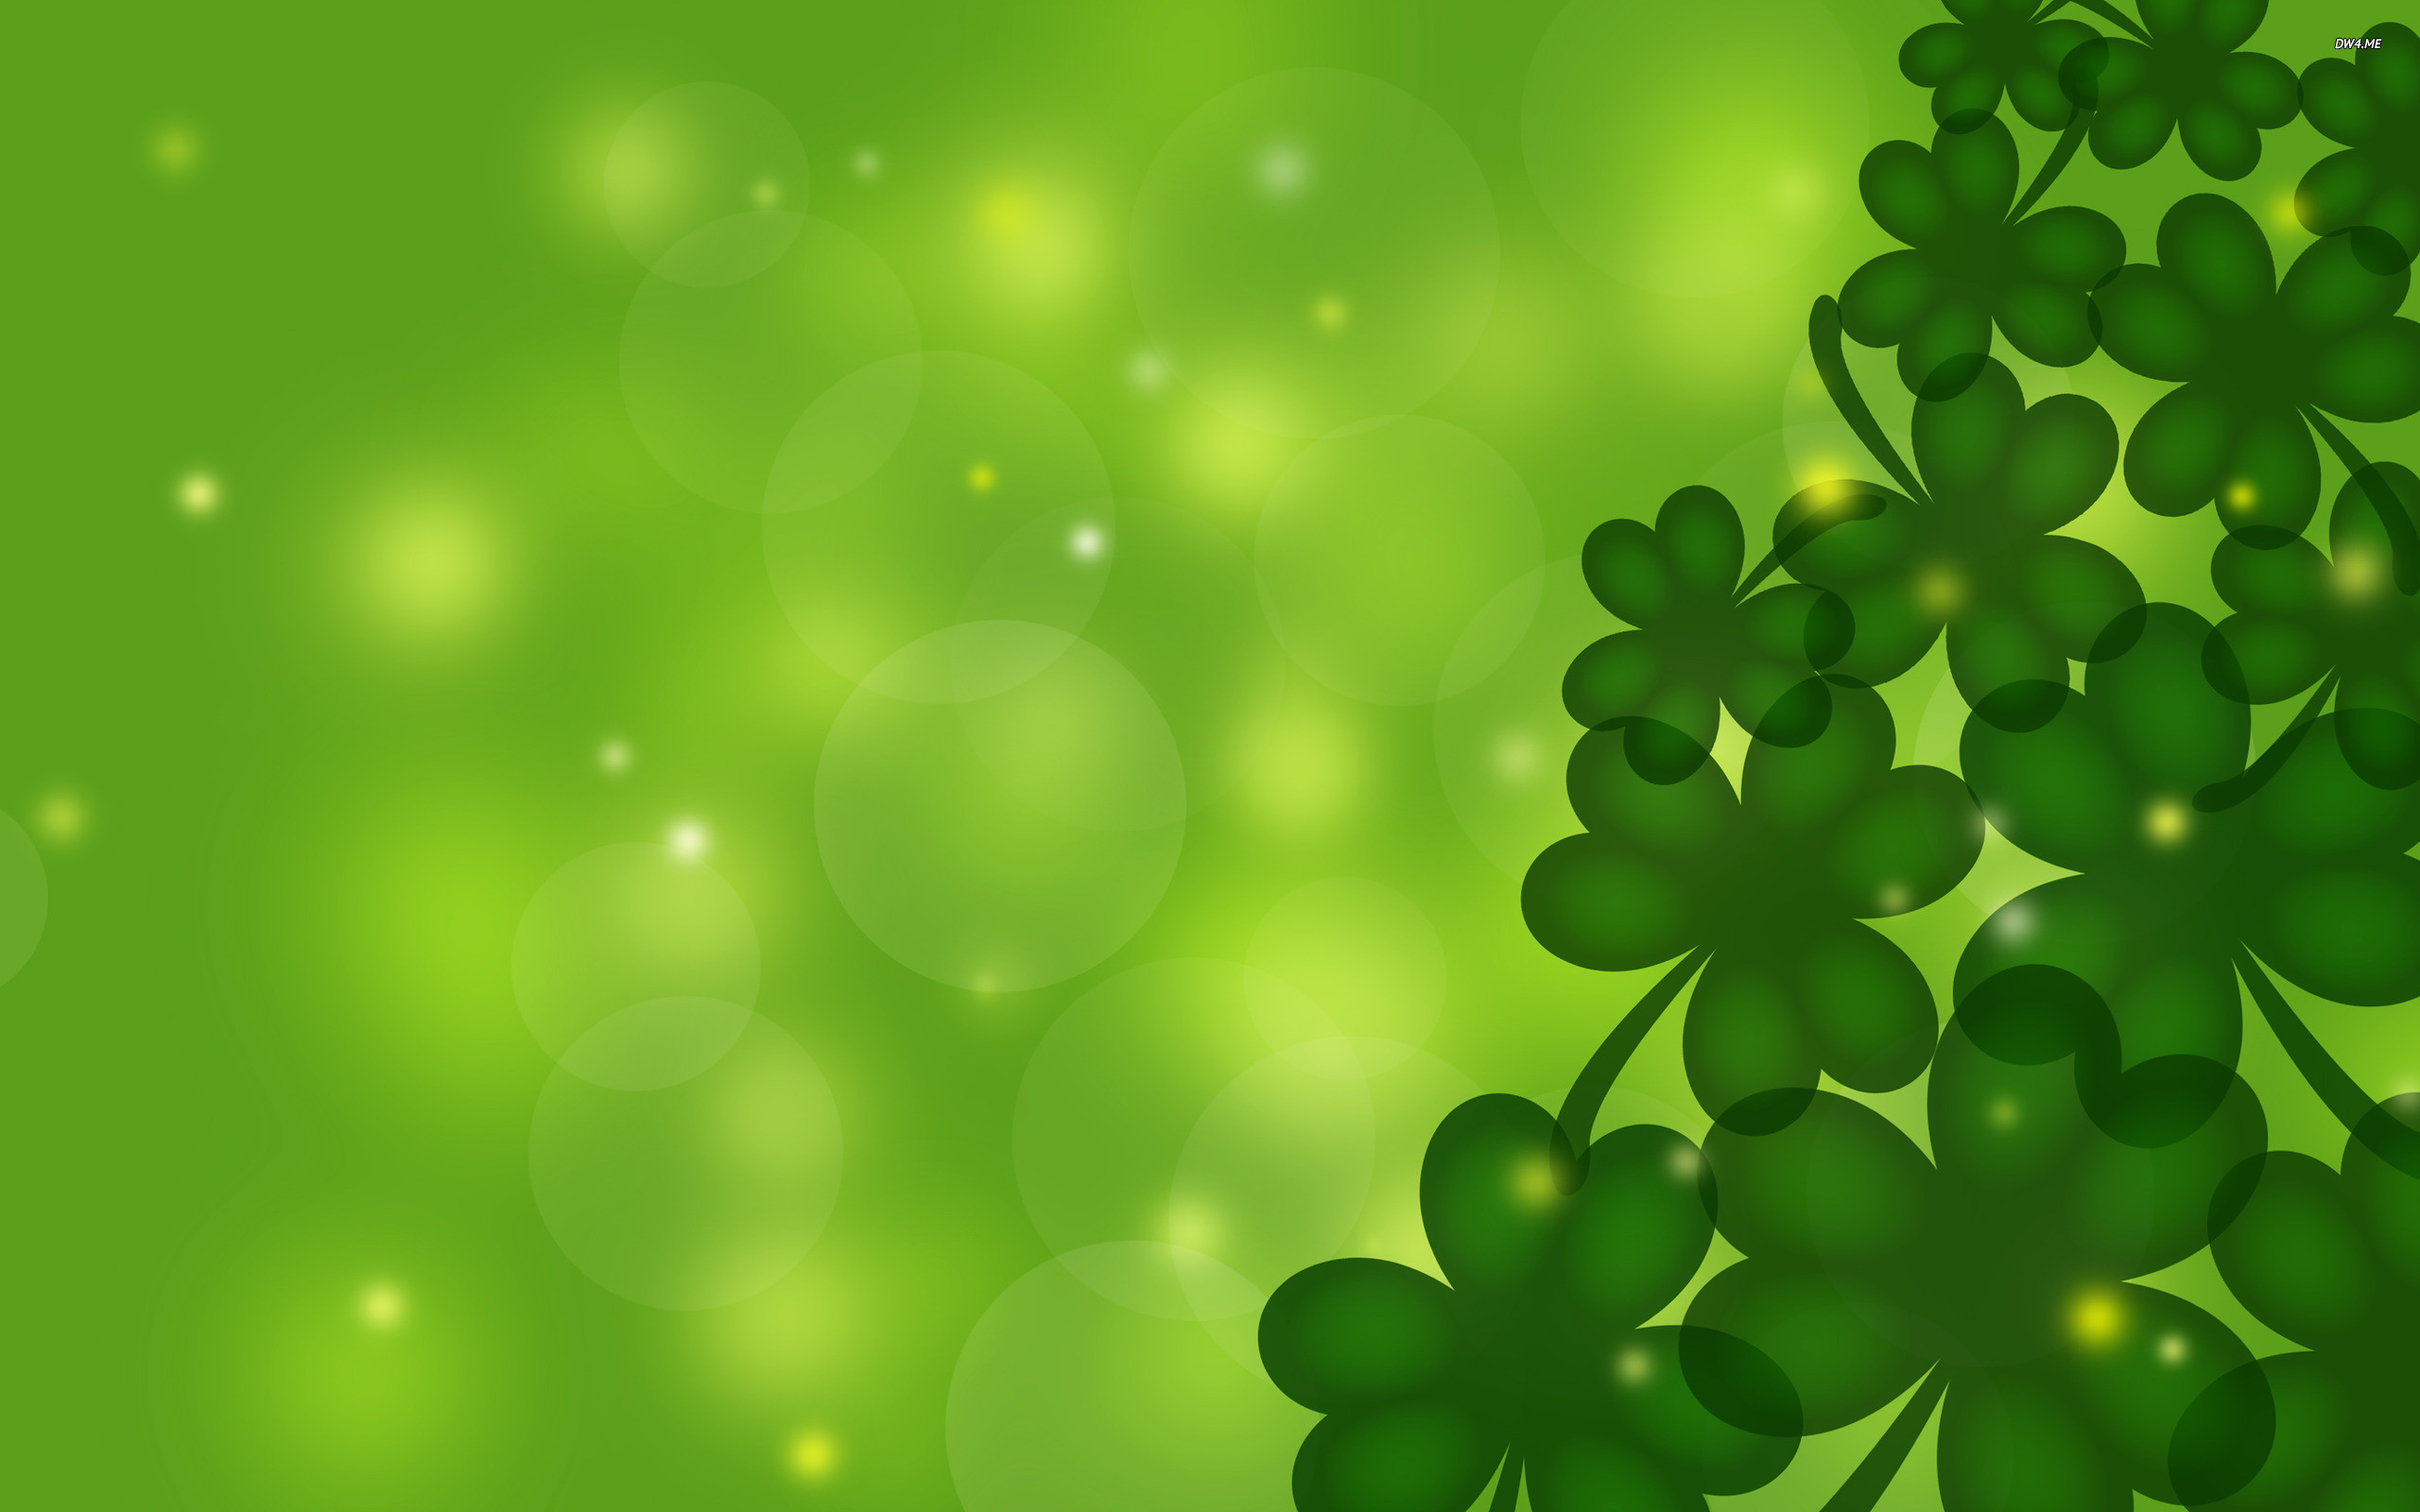 2560x1600 Wallpapers Shamrock - Wallpaper Cave Free Shamrock Wallpapers - Wallpaper  Cave Shamrock Wallpaper for Computer ...